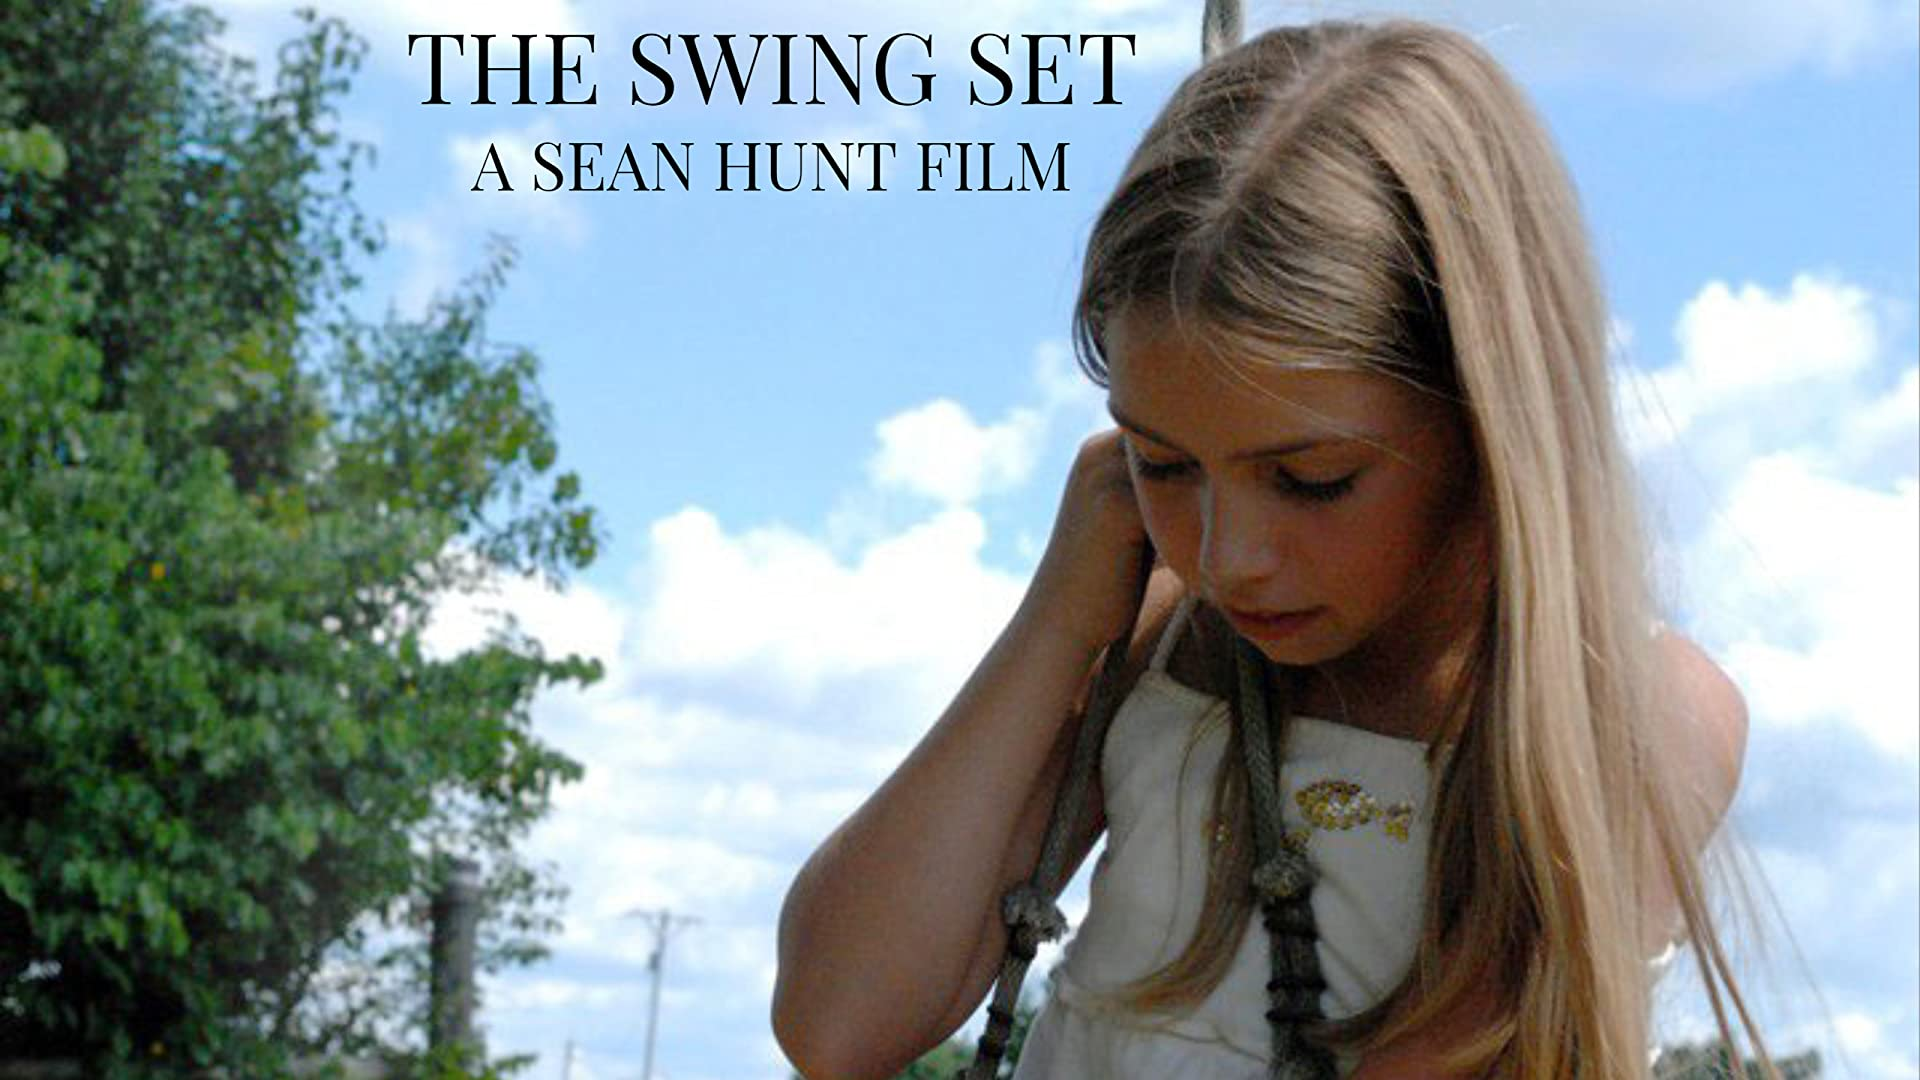 The Swing Set - A Sean Hunt Film